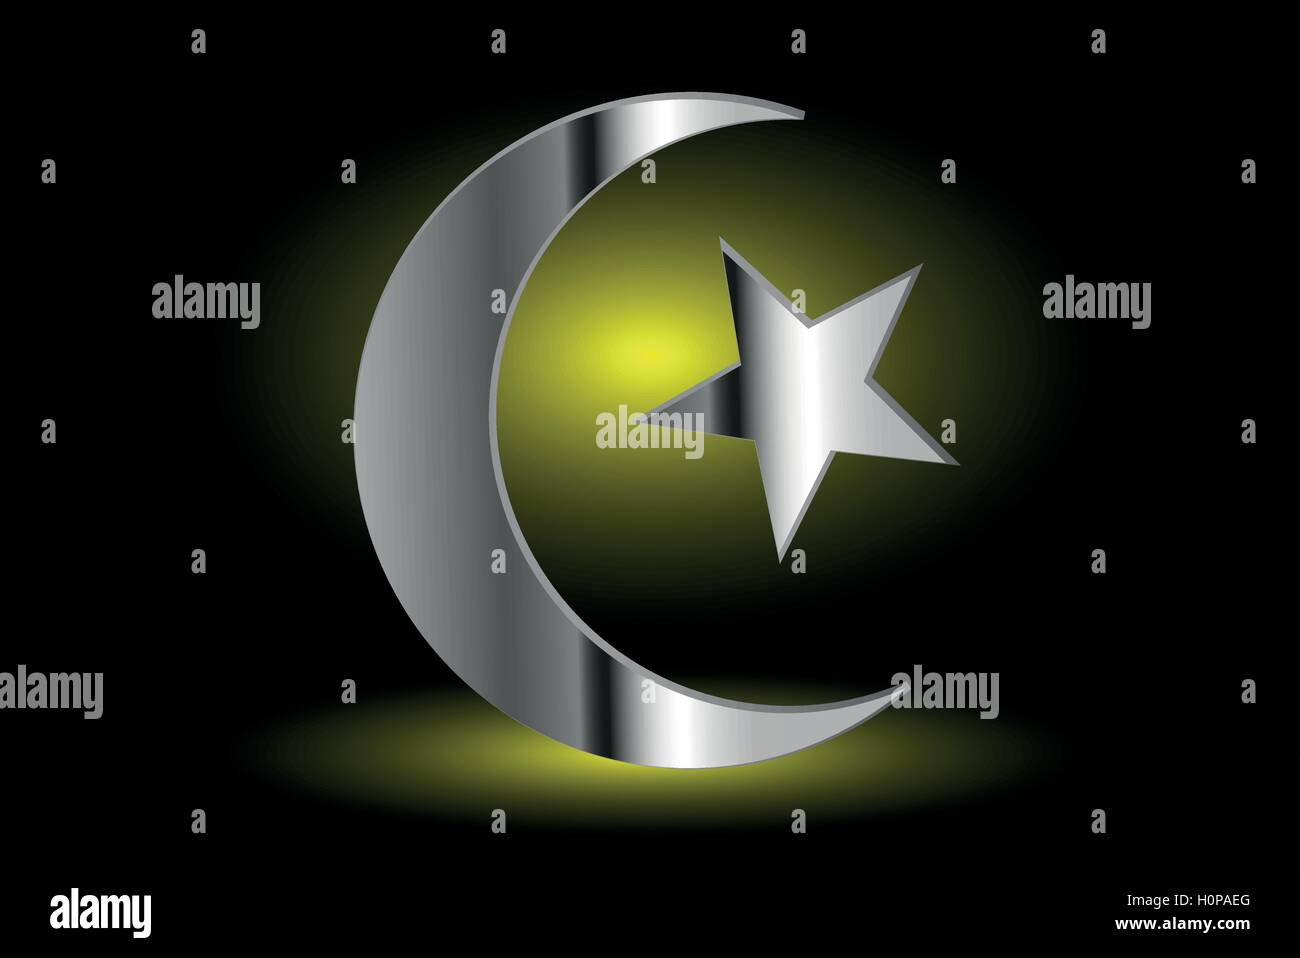 Muslim Symbol Islam Symbol Crescent And Star Icon Of Islam On A